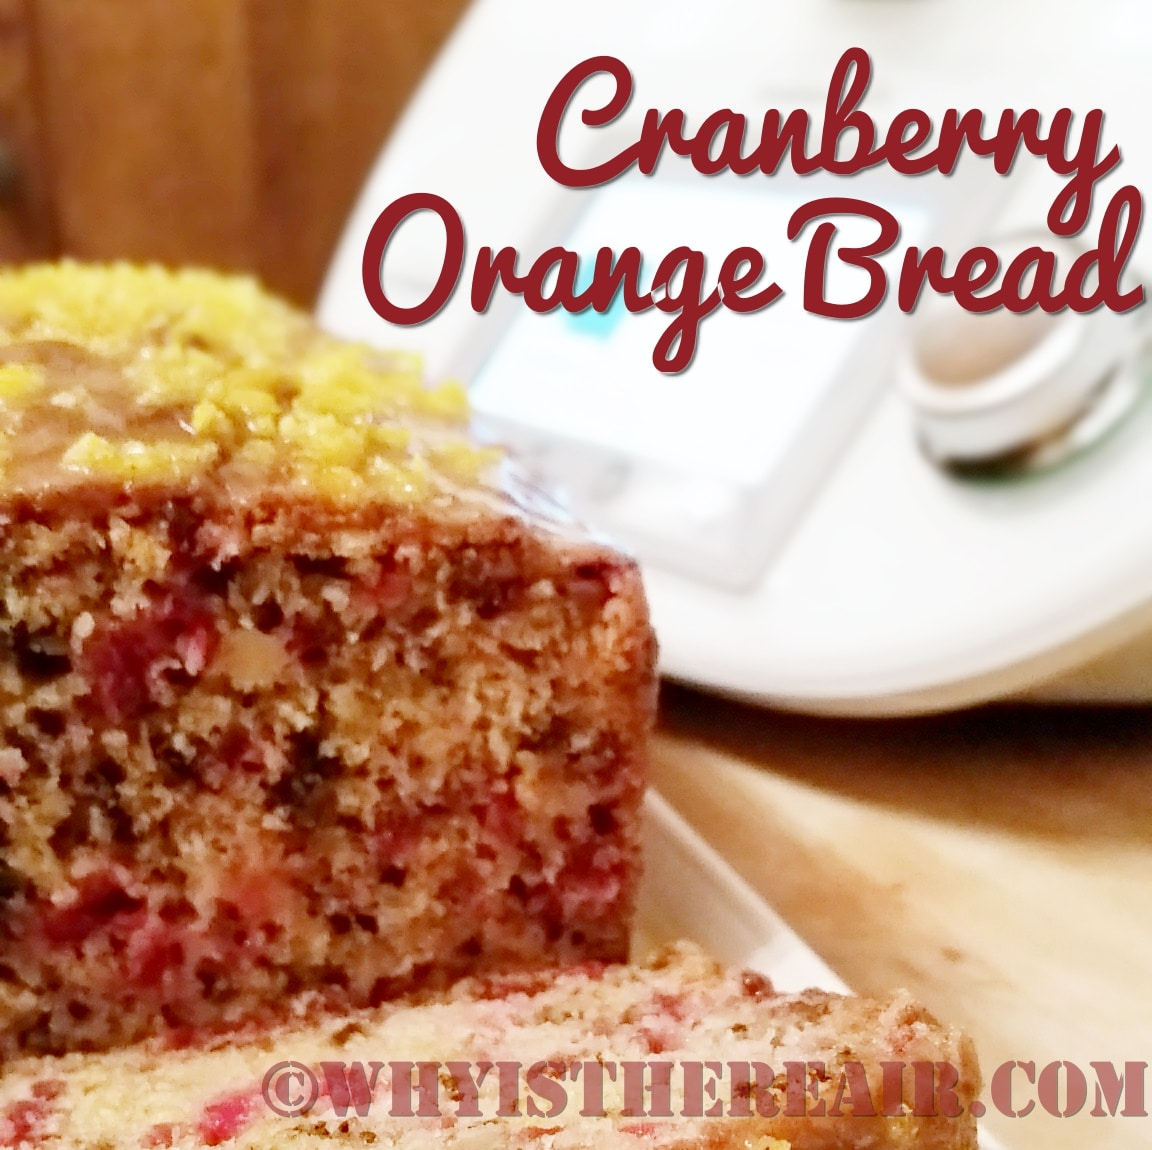 This Cranberry Orange Bread gives me Proustian memories of my childhood and ice skating on the cranberry bogs of Scituate, Massachusetts